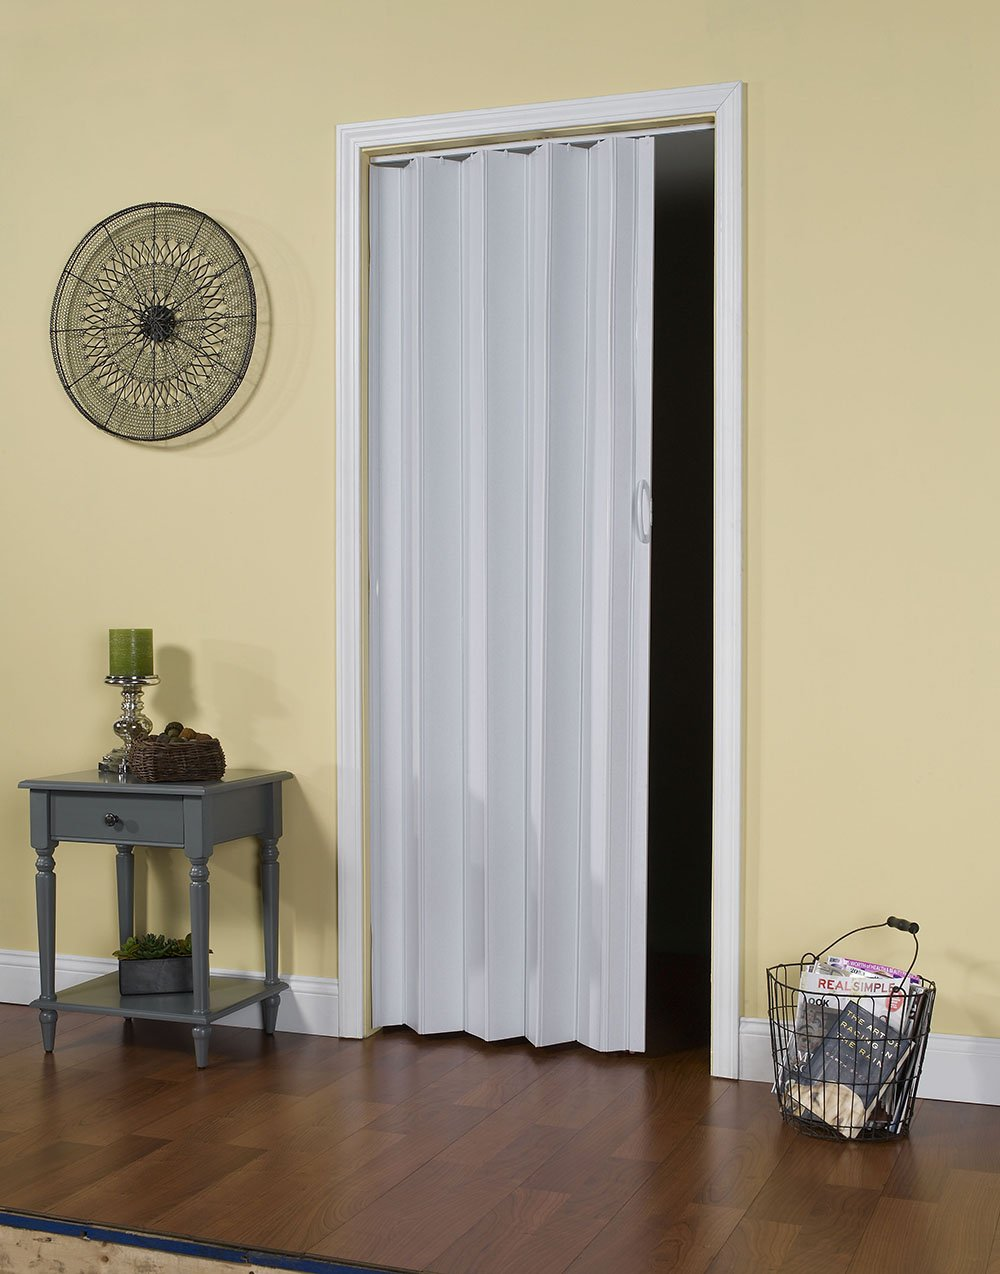 Spectrum CT3280T Contempra 24'' to 36'' x 80'' Accordion Folding Door, Sand White by LTL Home Products